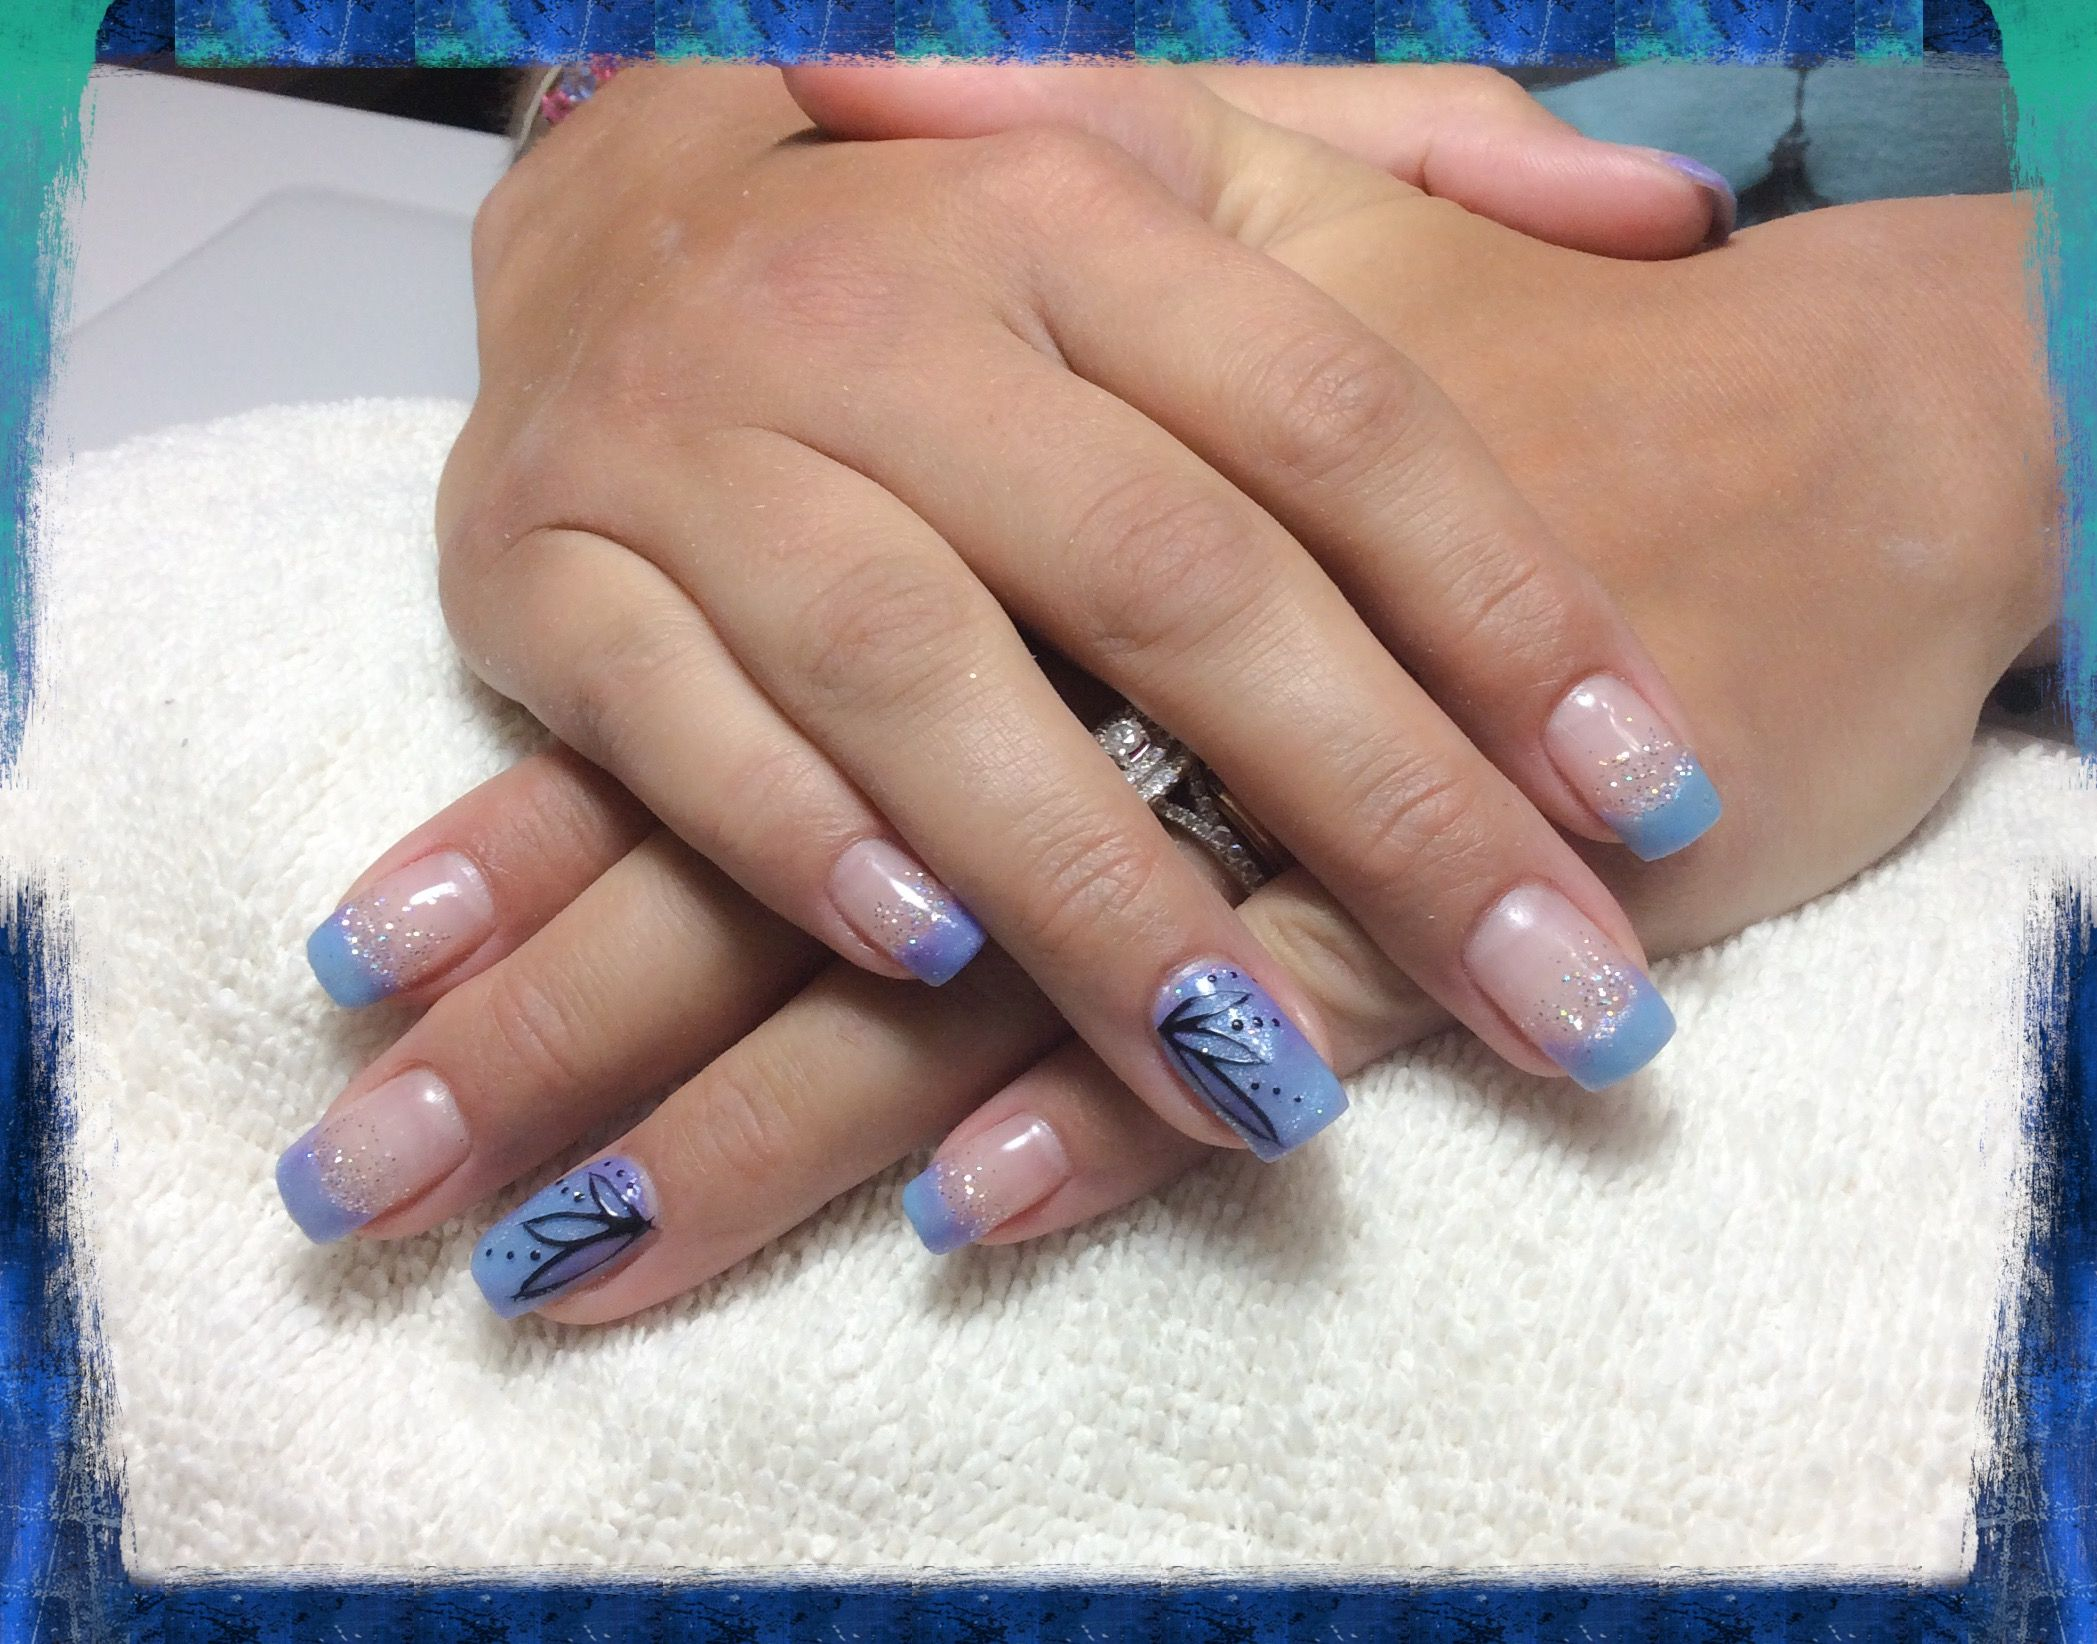 fuzion color changing gel nails with hand painted flowers | GEL ...